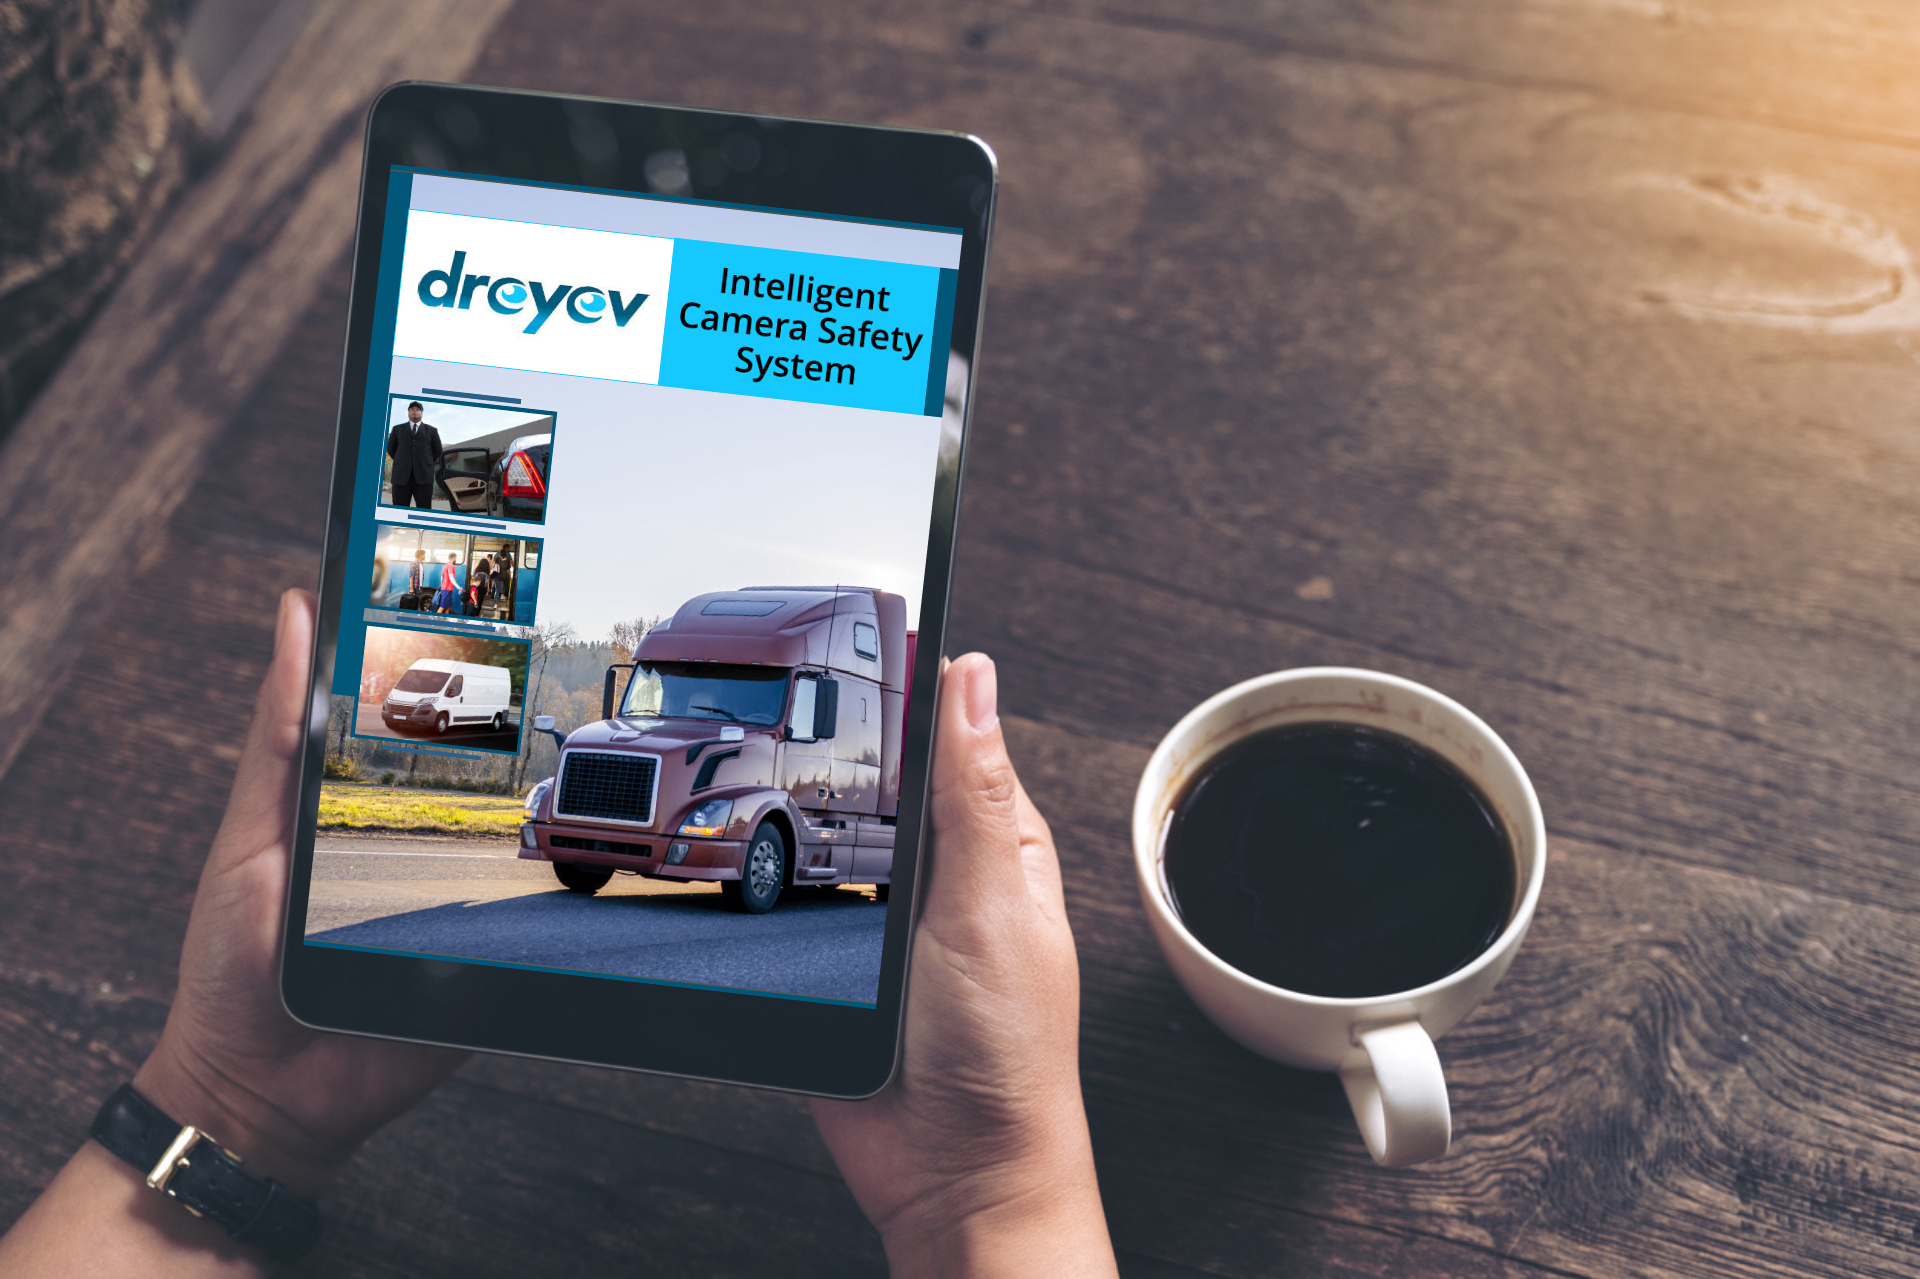 Dreyev Corporate Overview